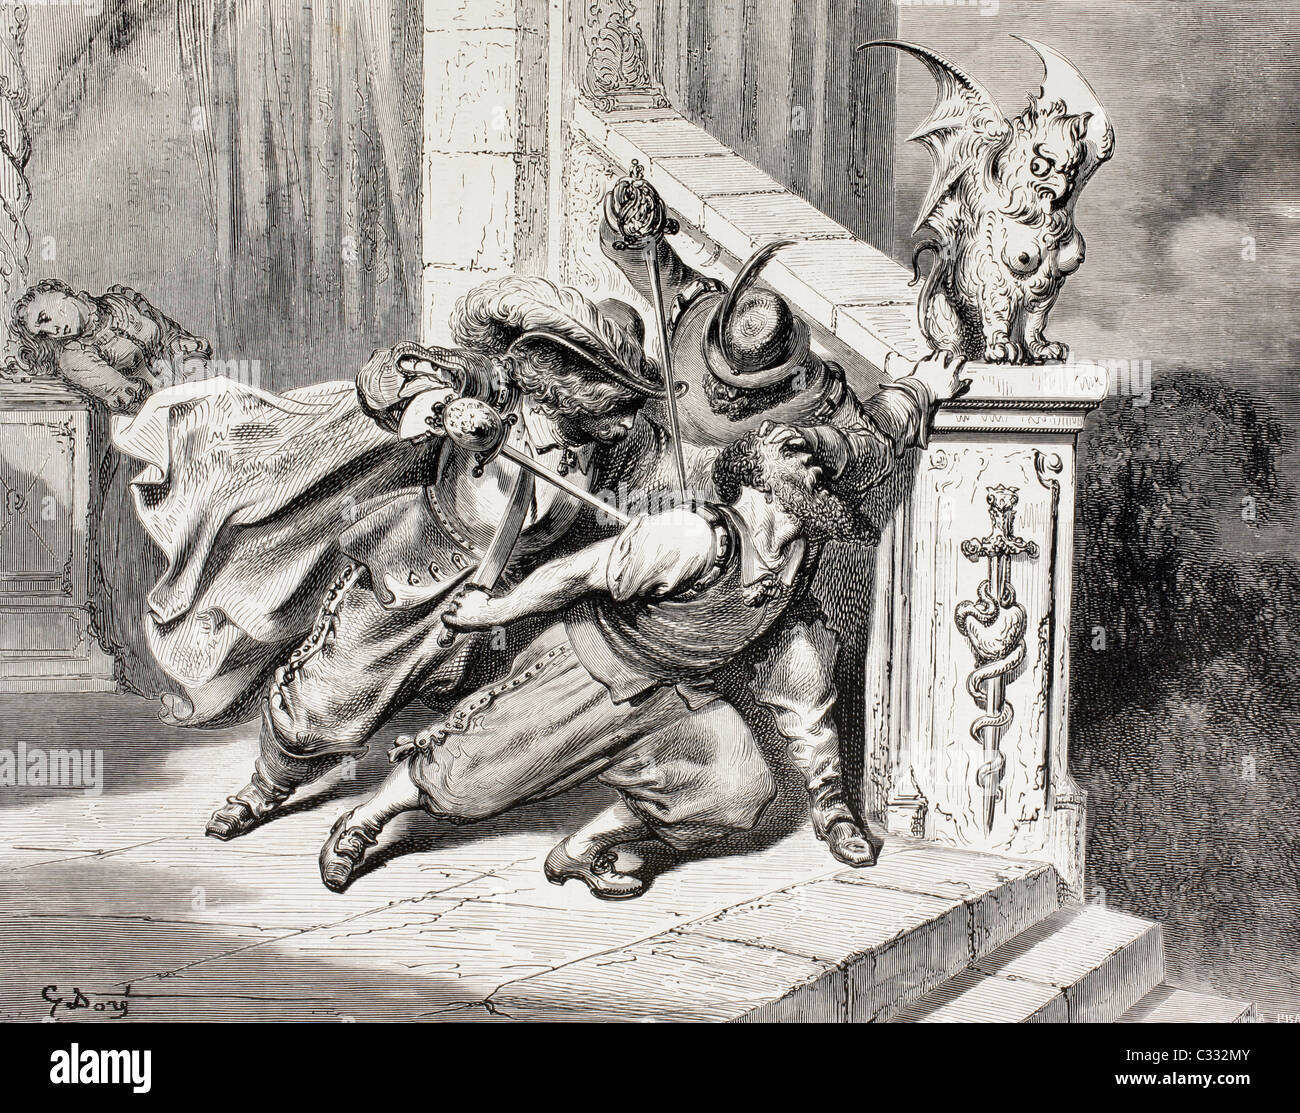 Scene from Bluebeard by Charles Perrault. The brothers kill Bluebeard and save their sister. - Stock Image